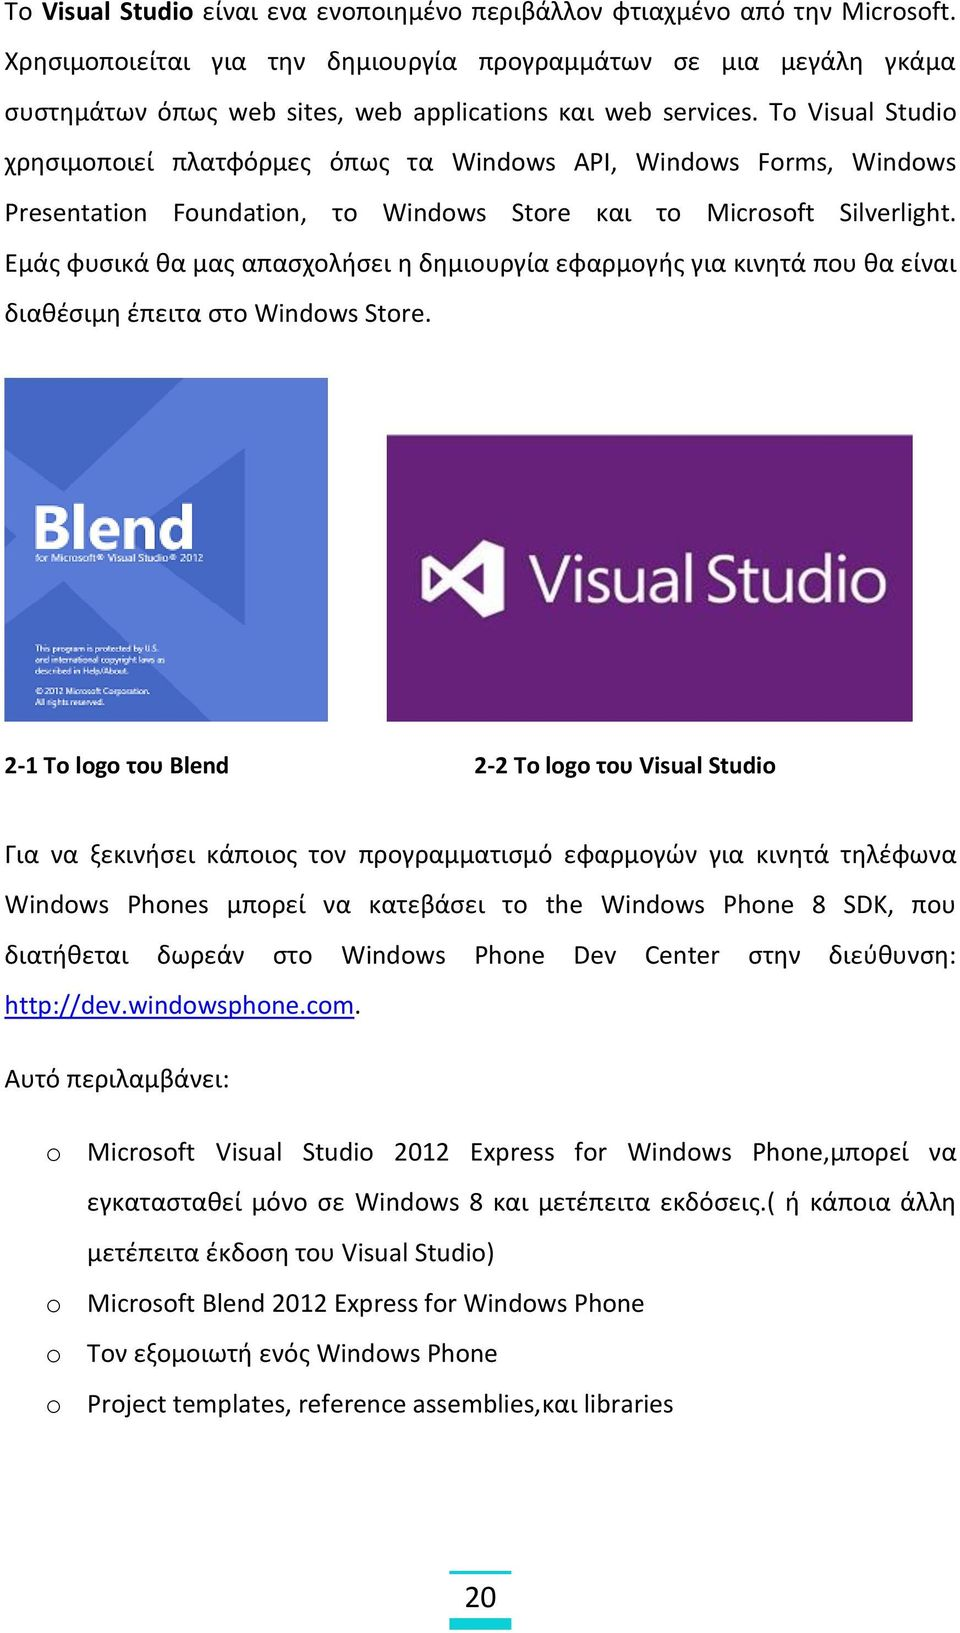 To Visual Studio χρησιμοποιεί πλατφόρμες όπως τα Windows API, Windows Forms, Windows Presentation Foundation, το Windows Store και το Microsoft Silverlight.